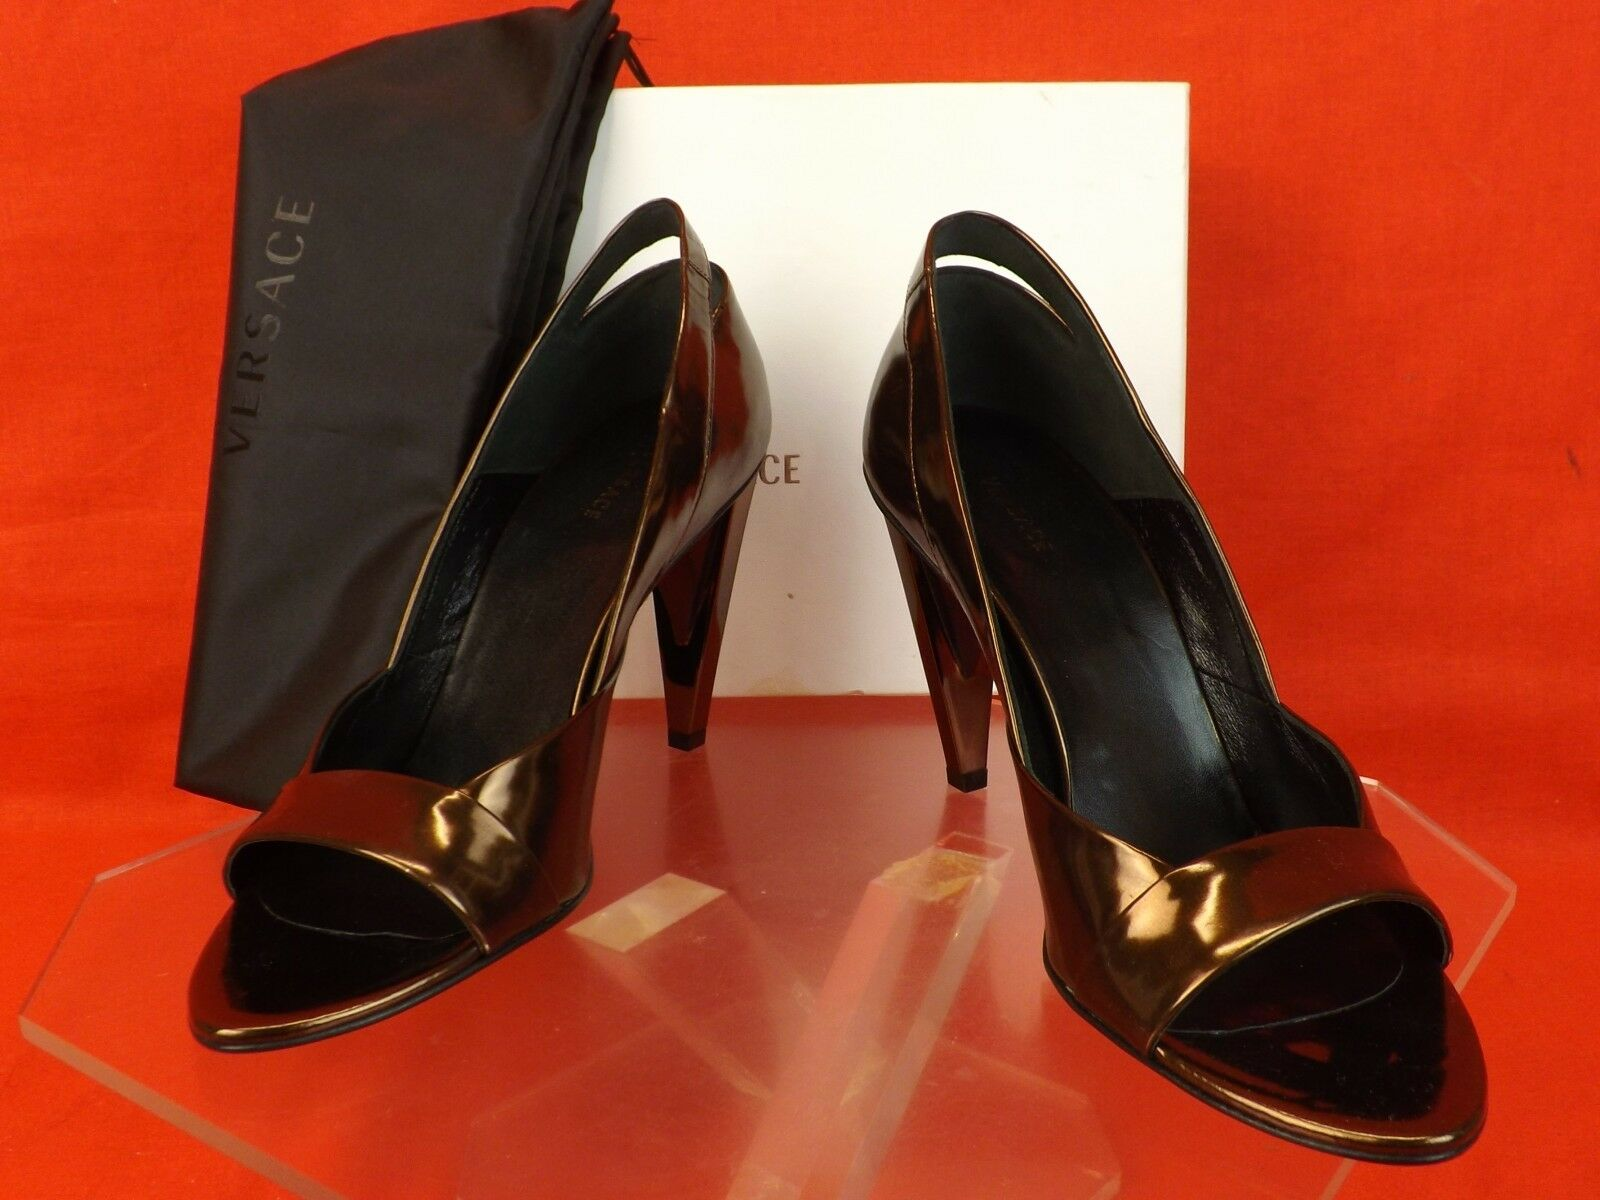 NIB VERSACE ESPRESSO PATENT LEATHER OPEN TOE V V V SCULPTUrot HEEL PUMPS 39  735 cf77c3